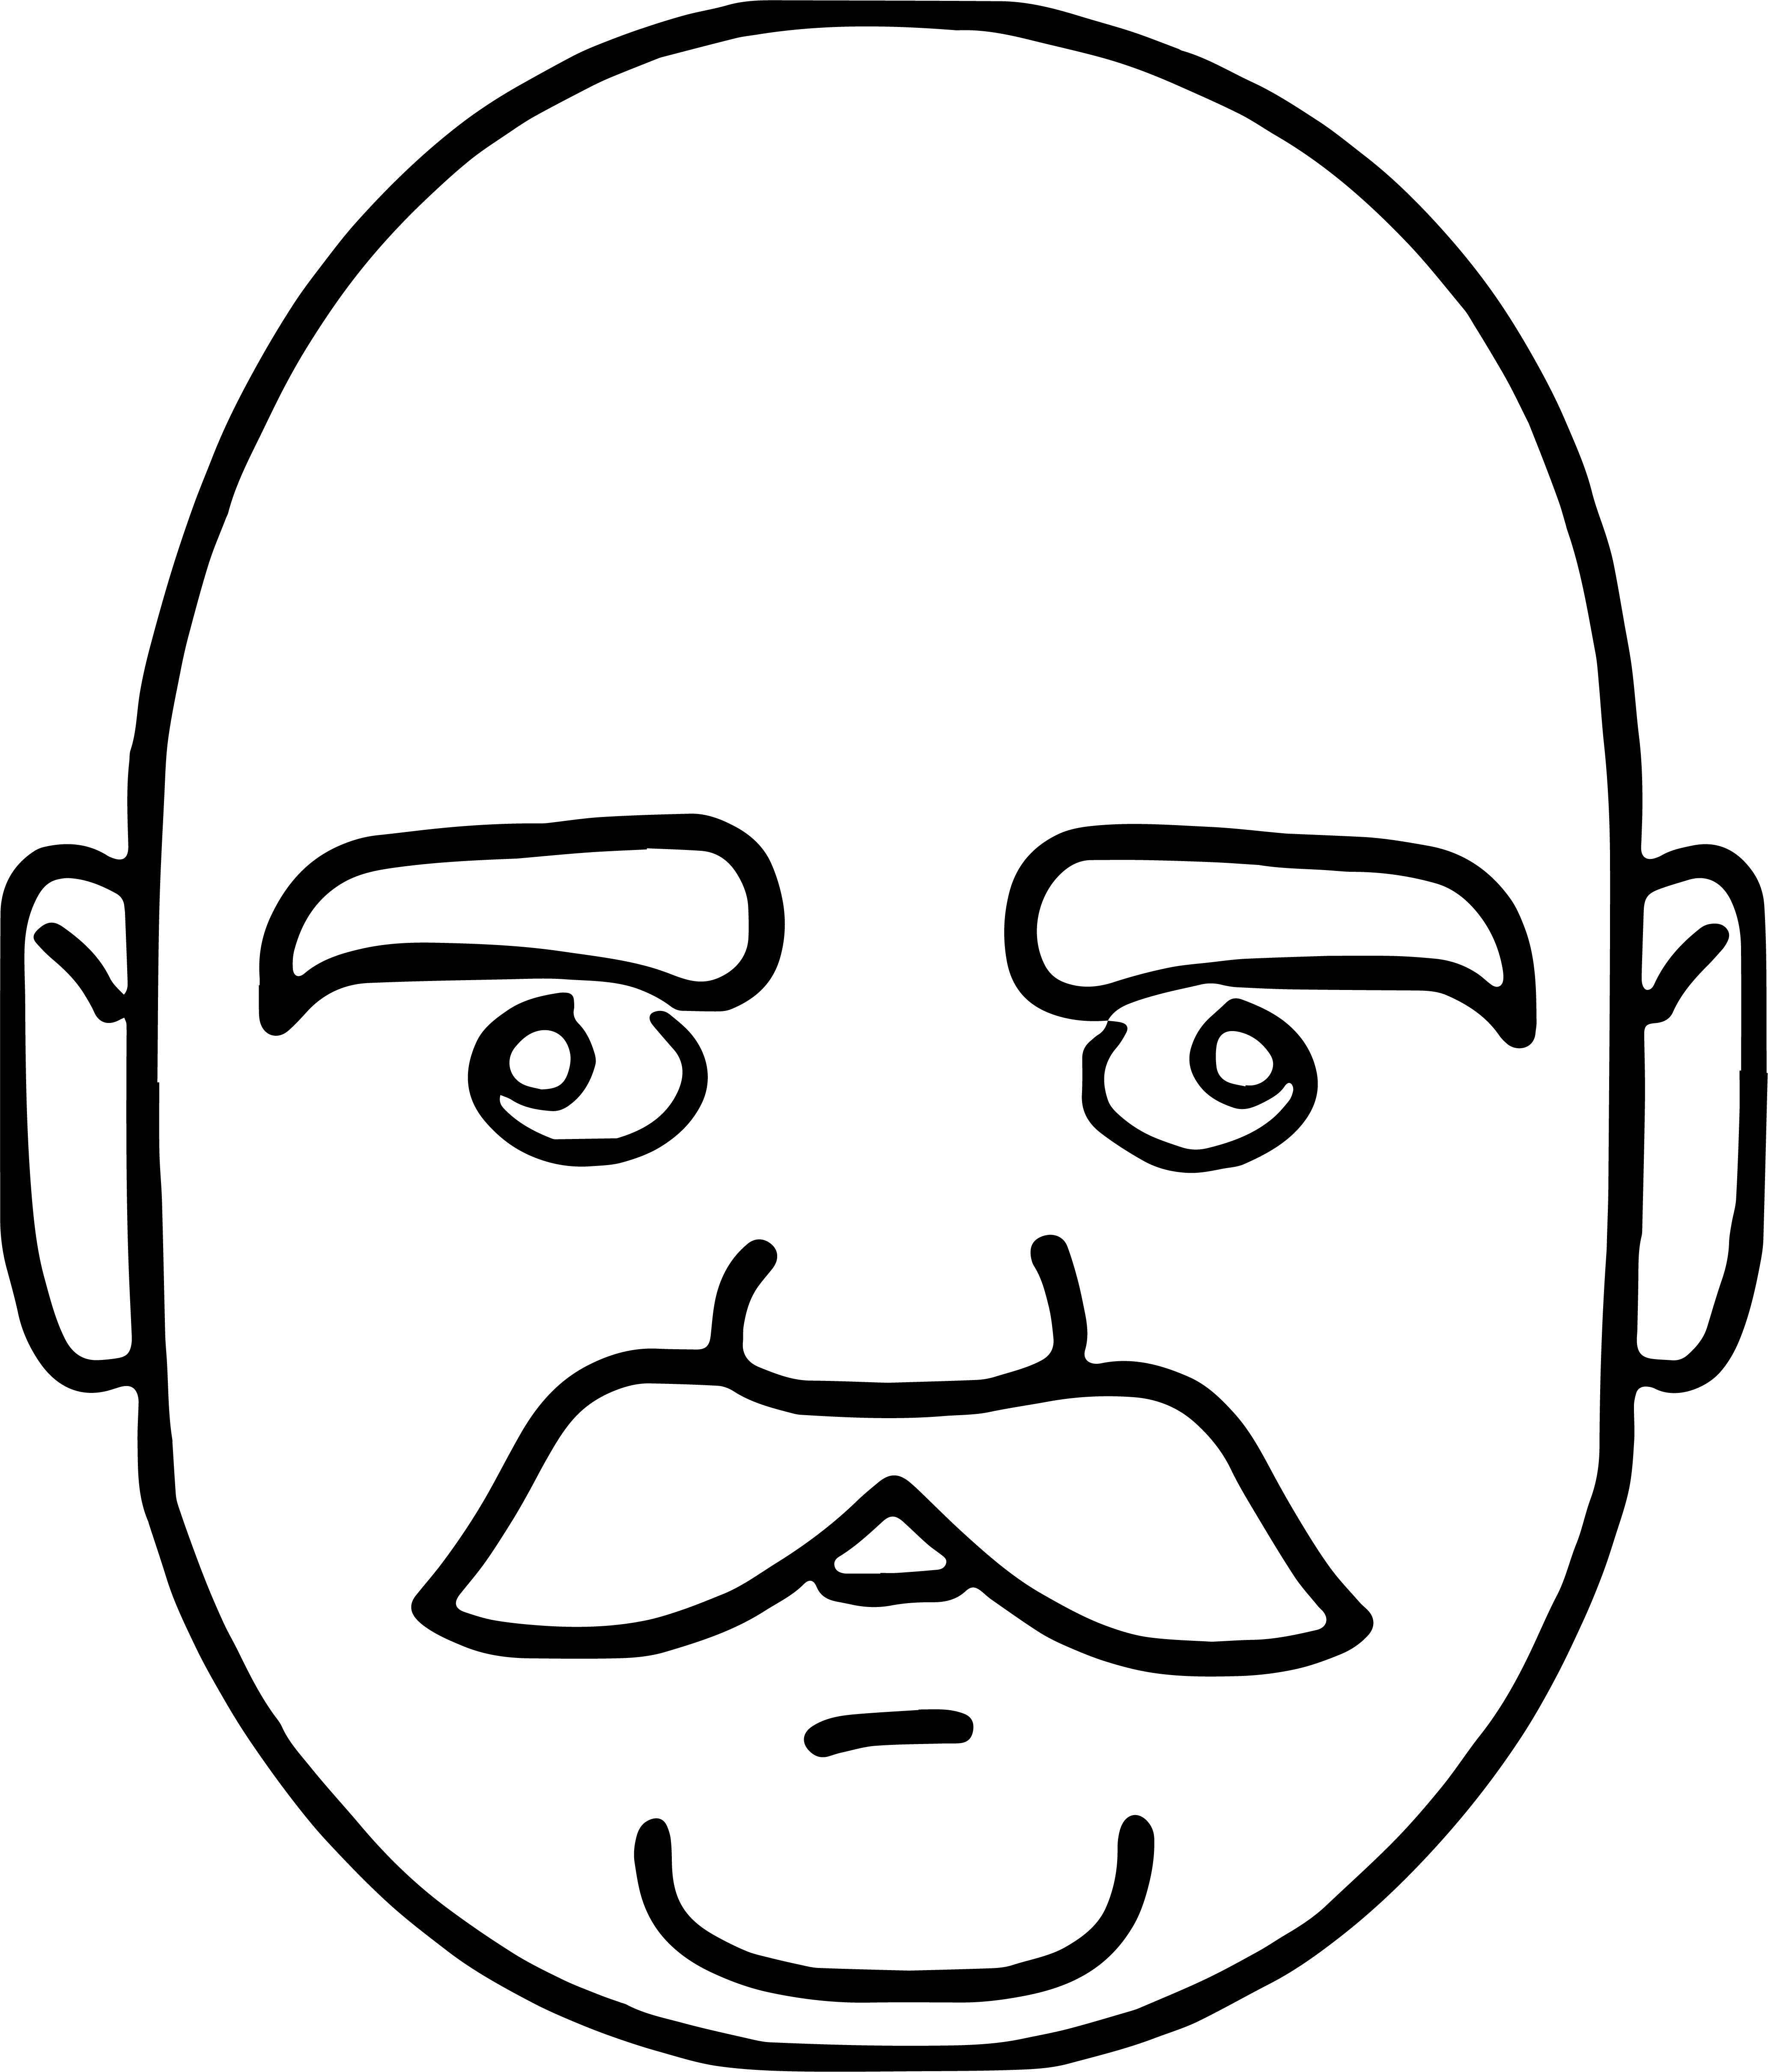 Face Of Bald Headed Man With Mustache Just Coloring Page